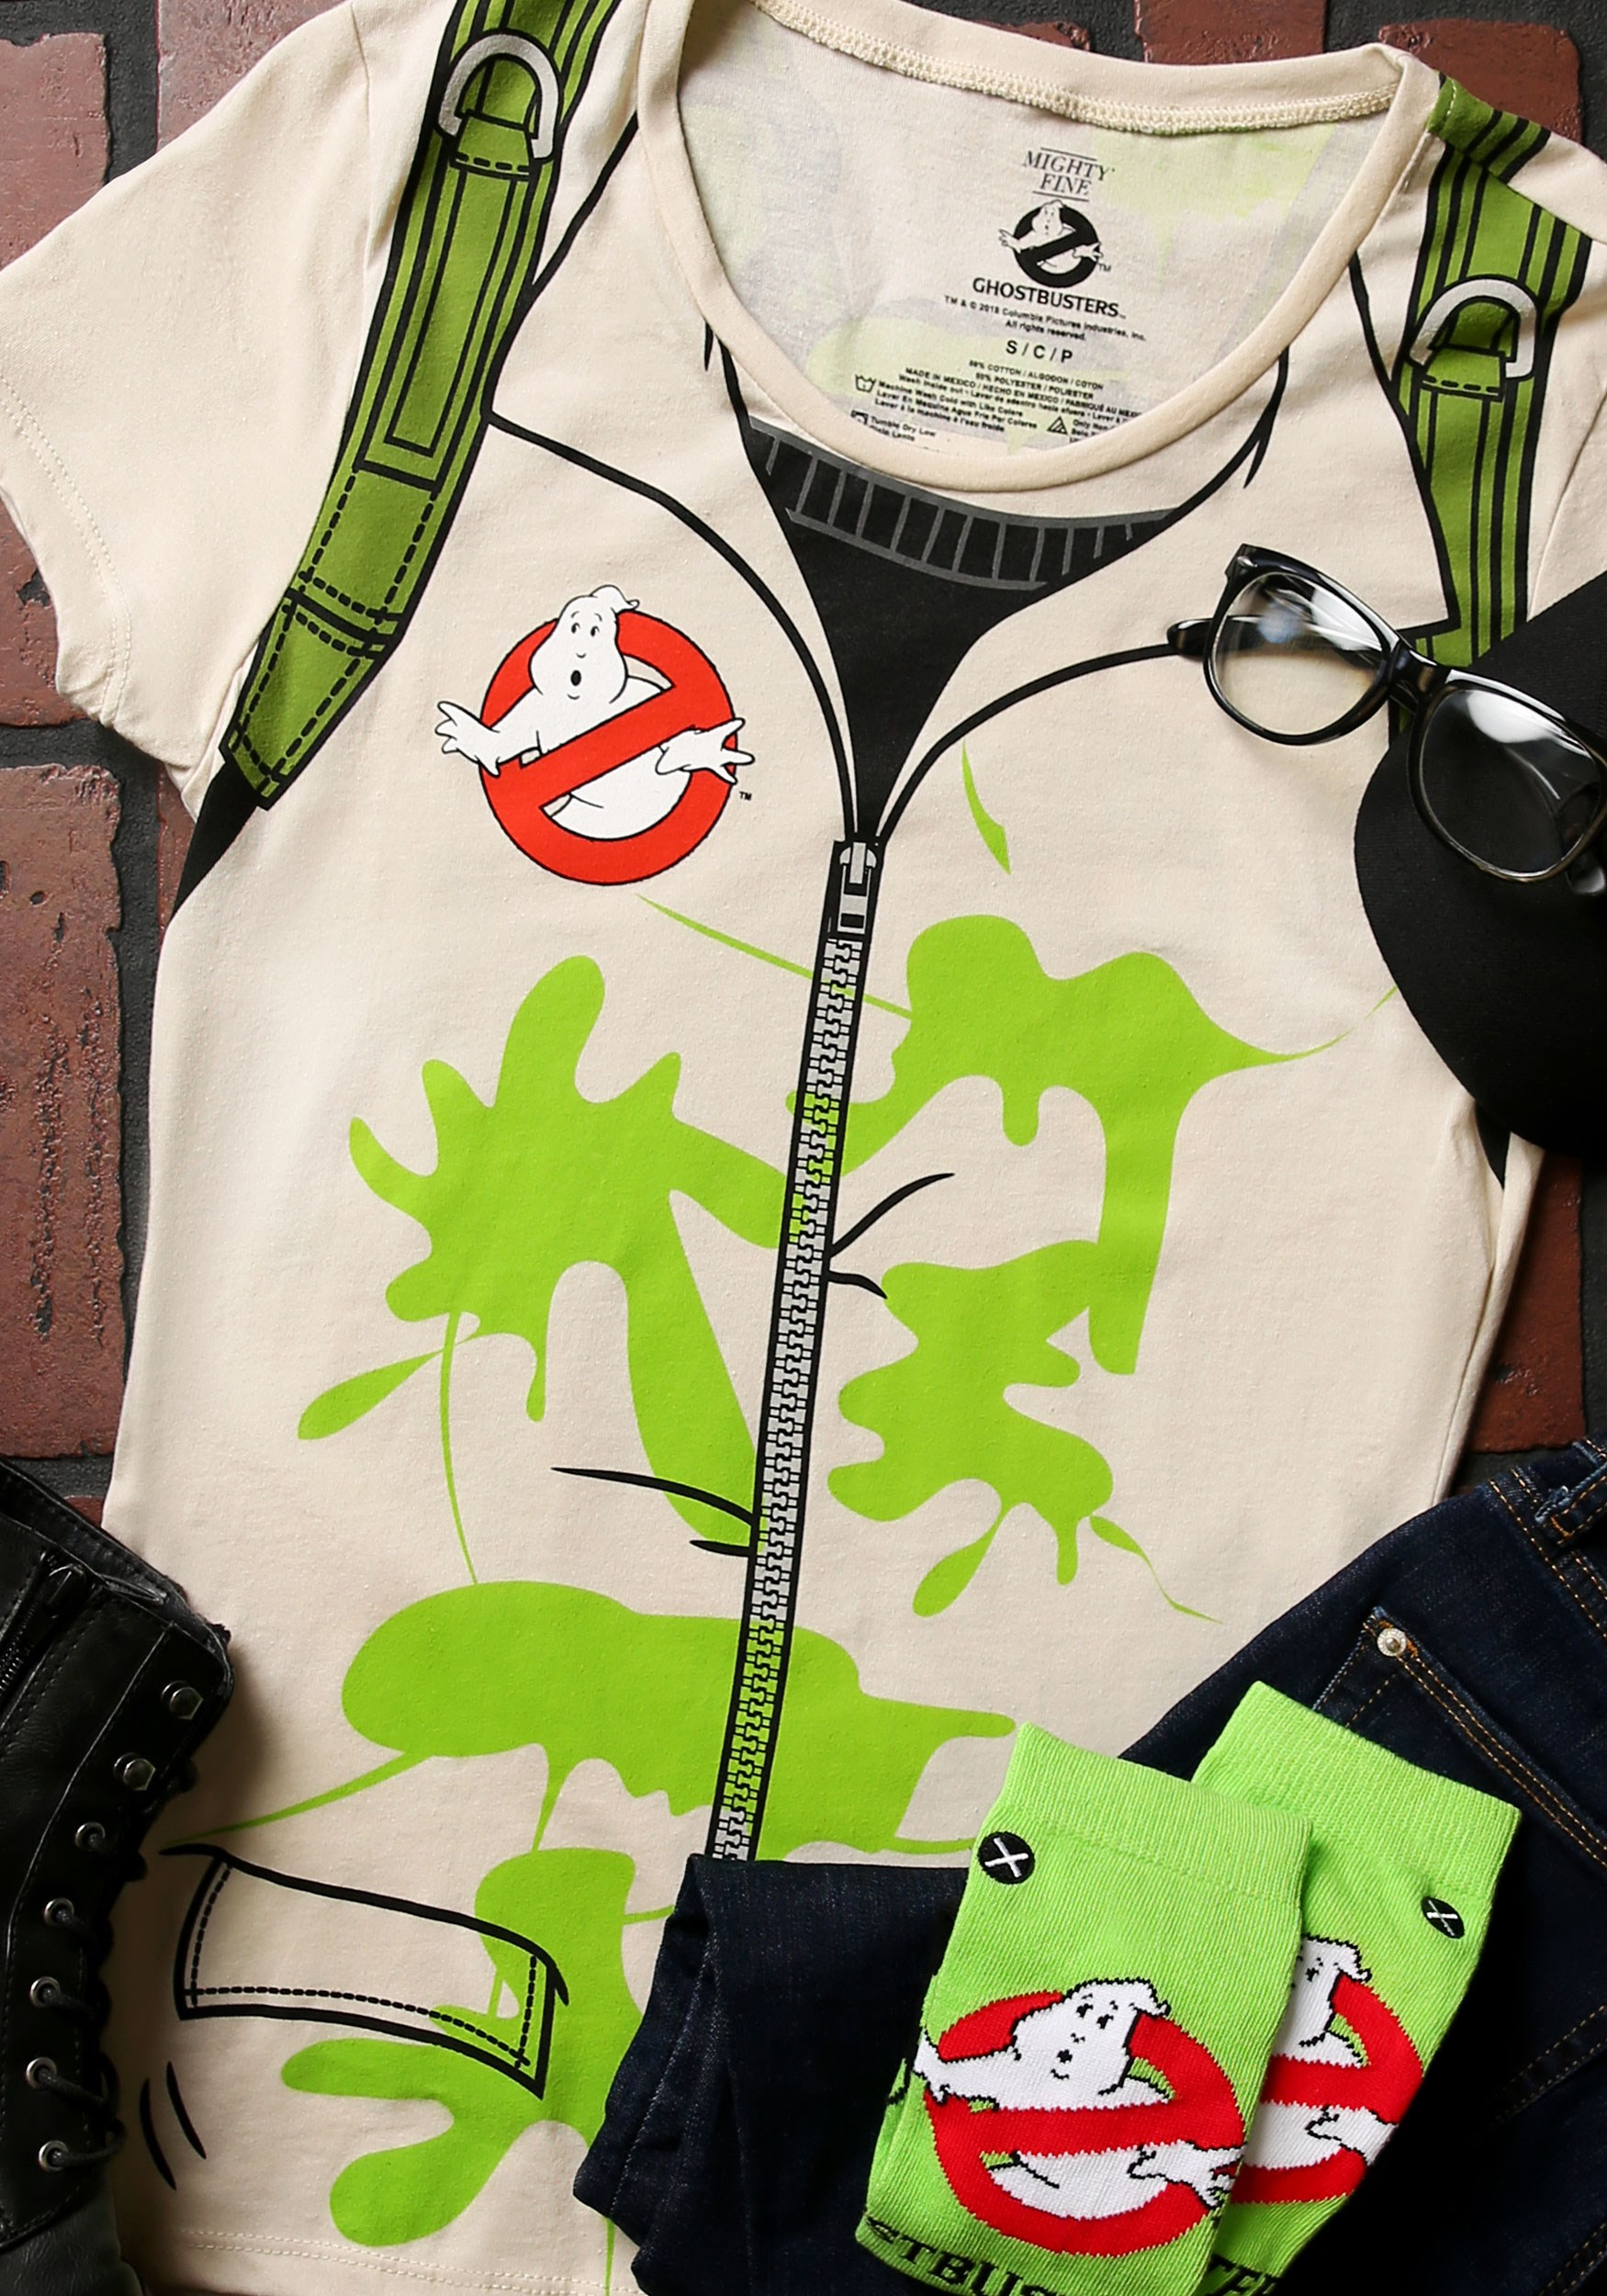 bbc091e55 womens-costume-ghostbusters-t-shirt.jpg